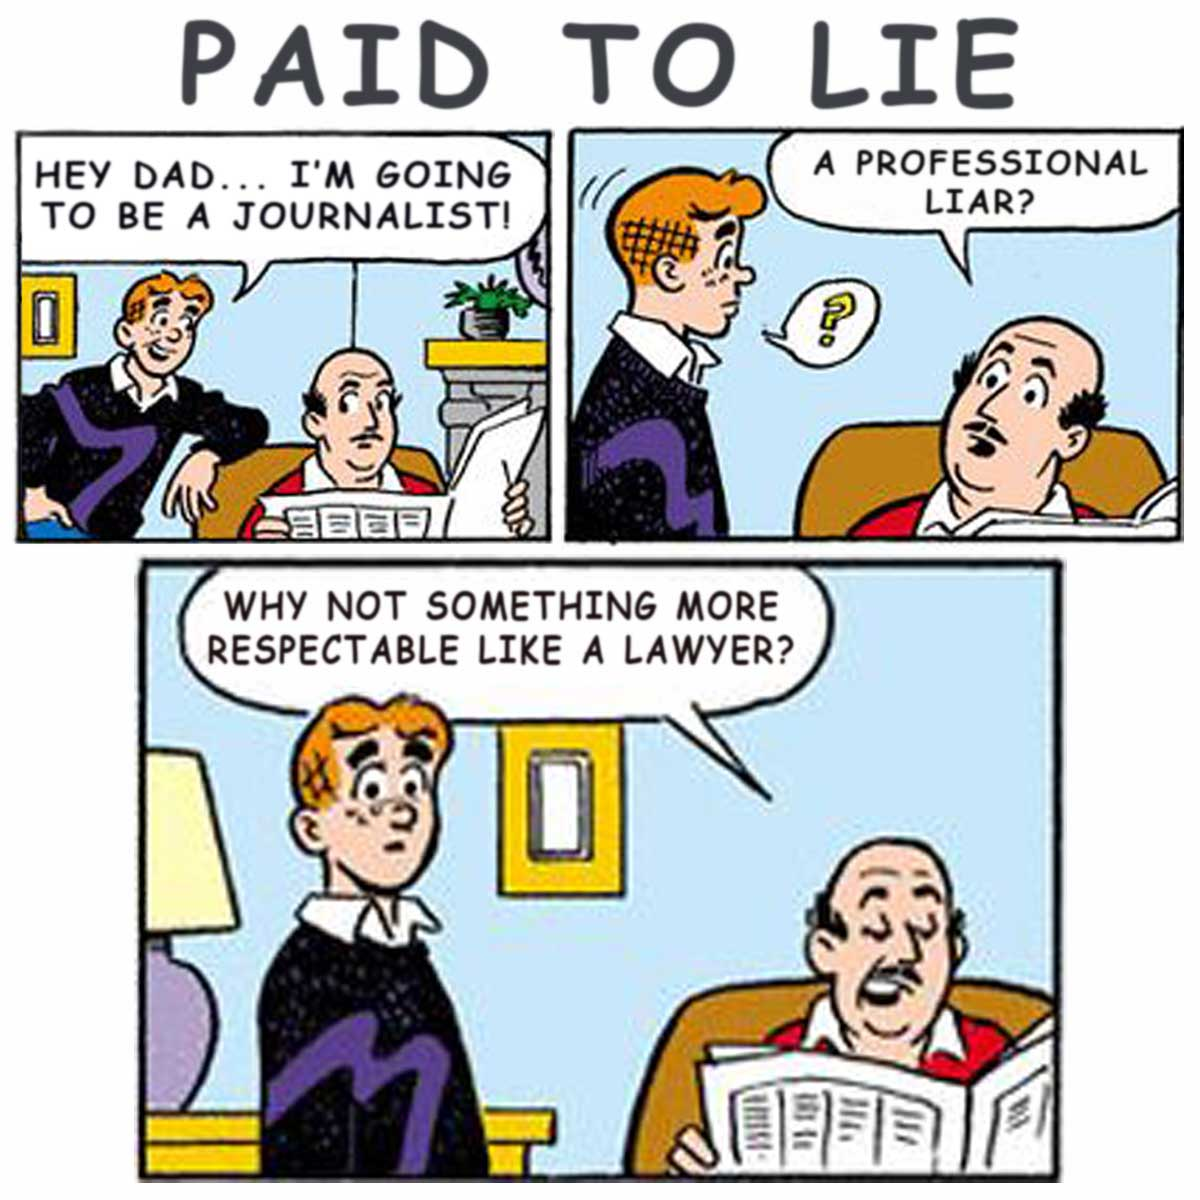 Be a Journalist – AKA Professional Liar